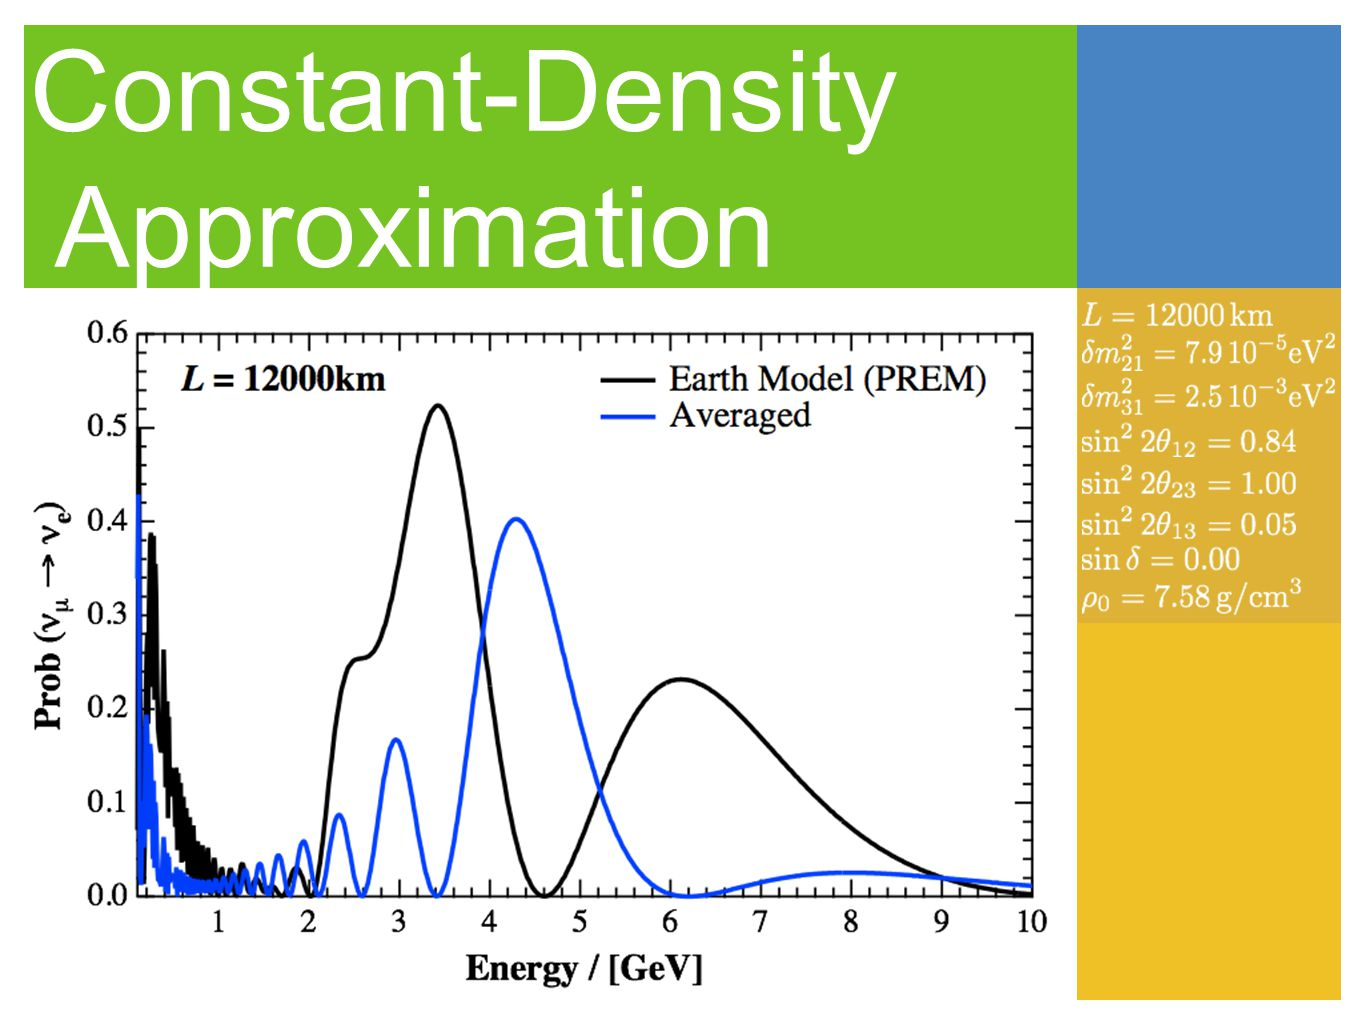 Constant-Density Approximation